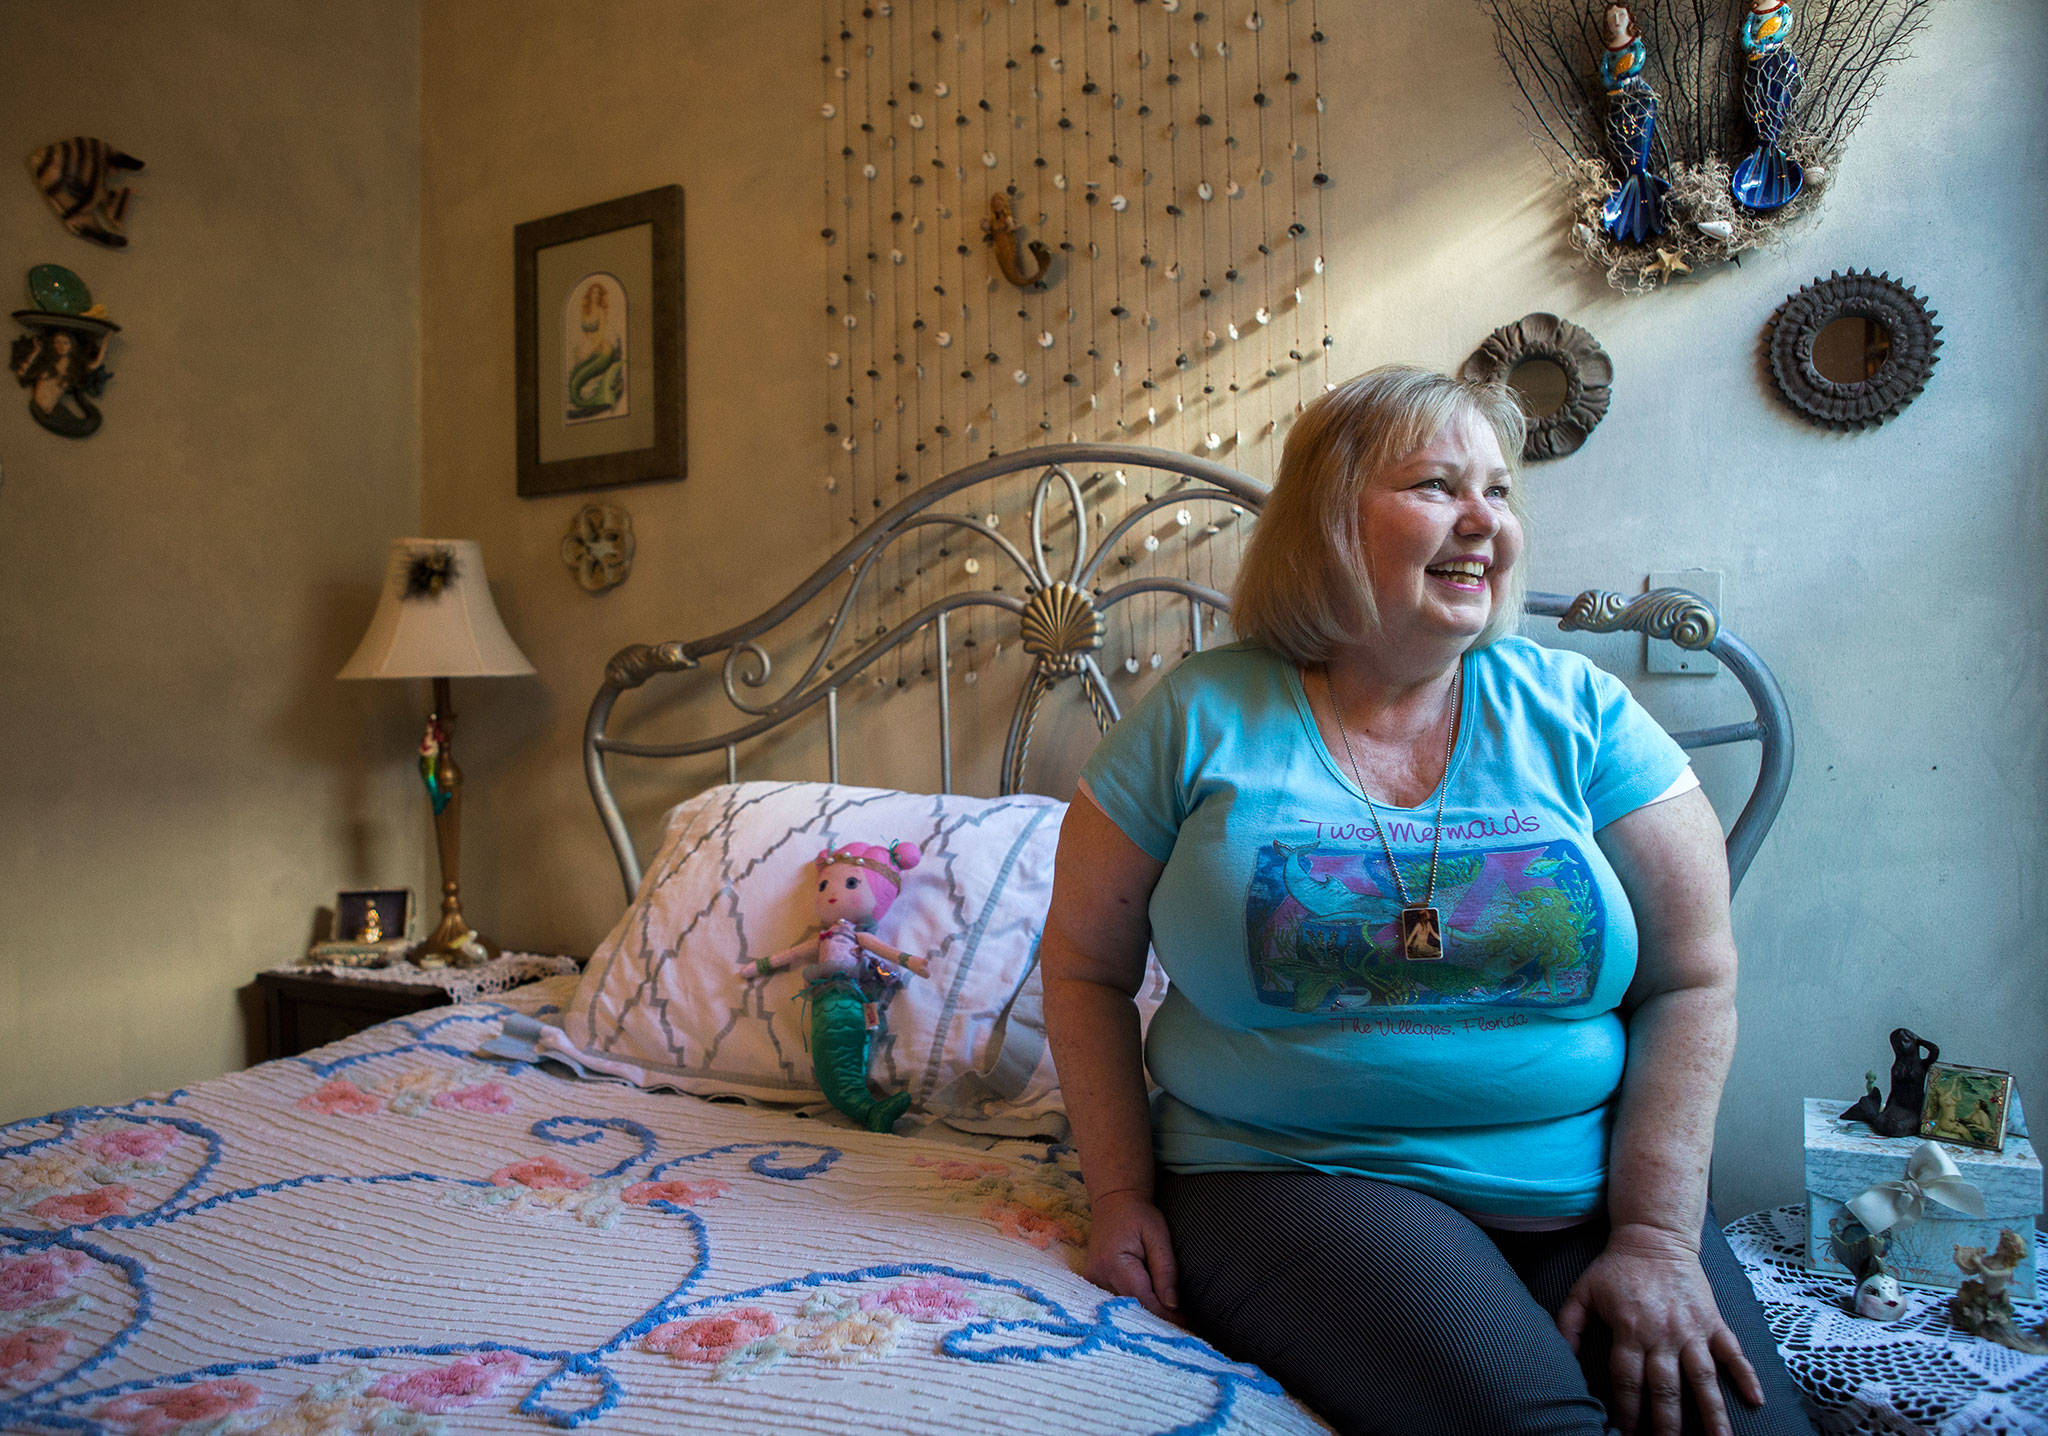 Melissa Strash in her mermaid-themed bedroom at her home in Everett. (Olivia Vanni / The Herald)